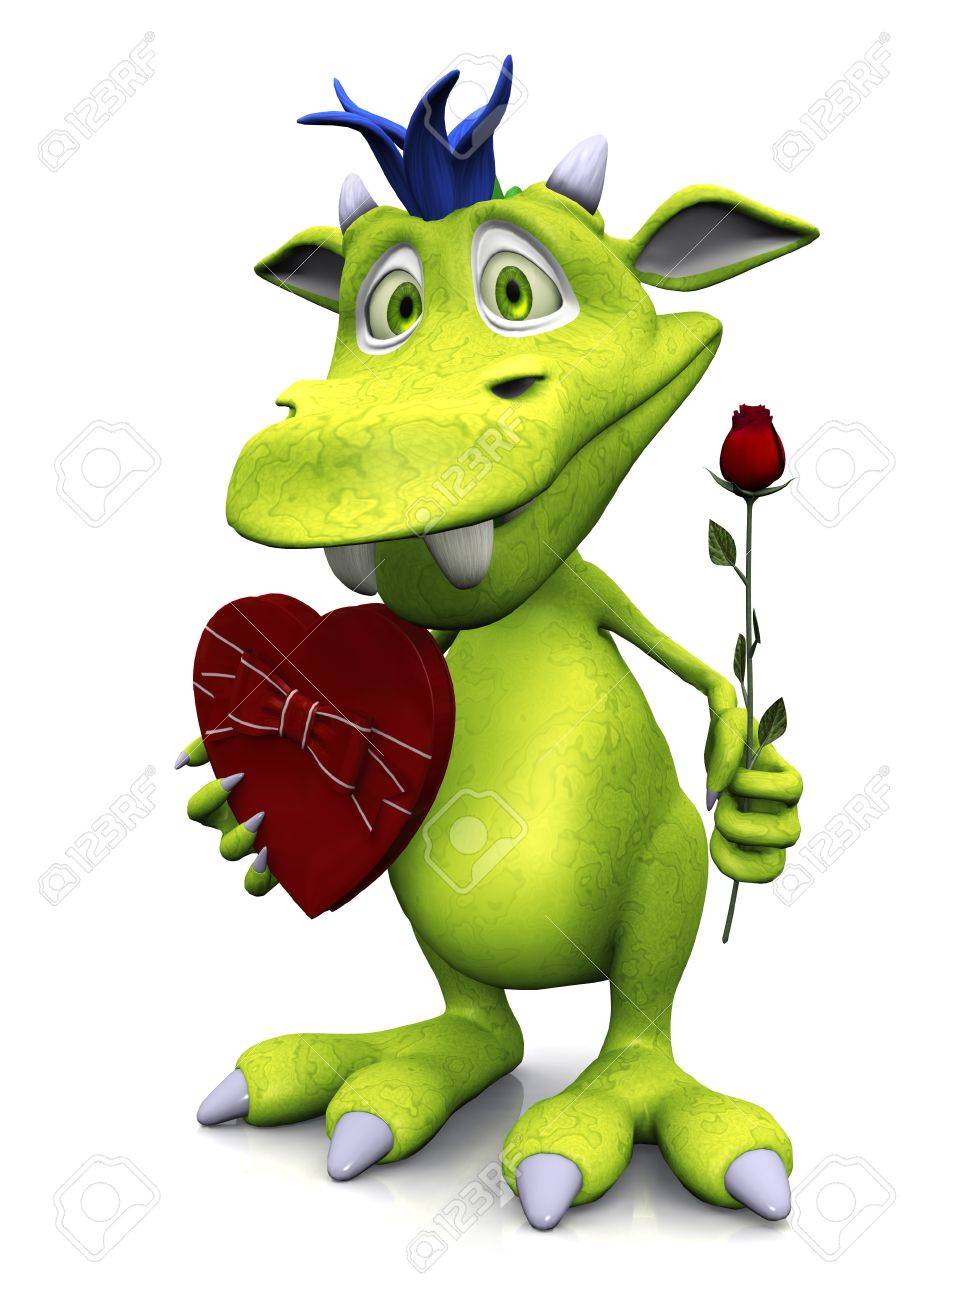 A cute friendly cartoon monster holding a rose in one hand and a heart shaped box of chocolate in the other. The monster is green with blue hair. White background. Stock Photo - 12323277